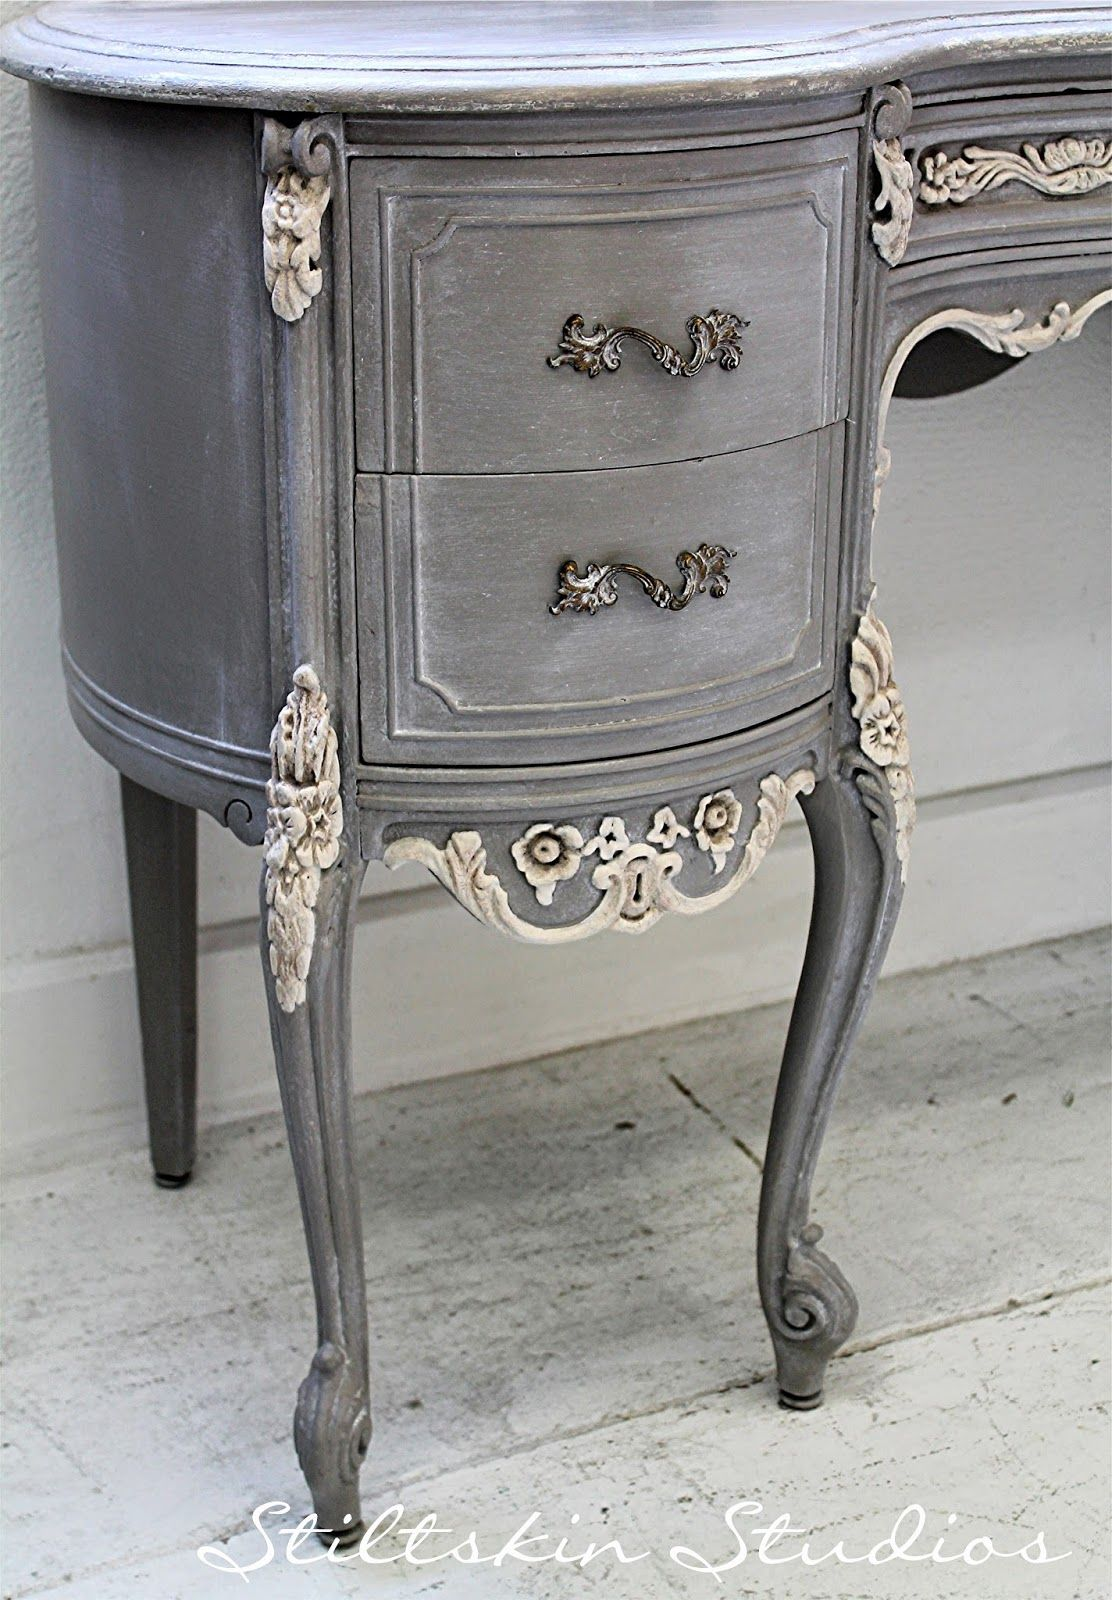 Stiltskin studios weathered grey french desk always love Images of painted furniture